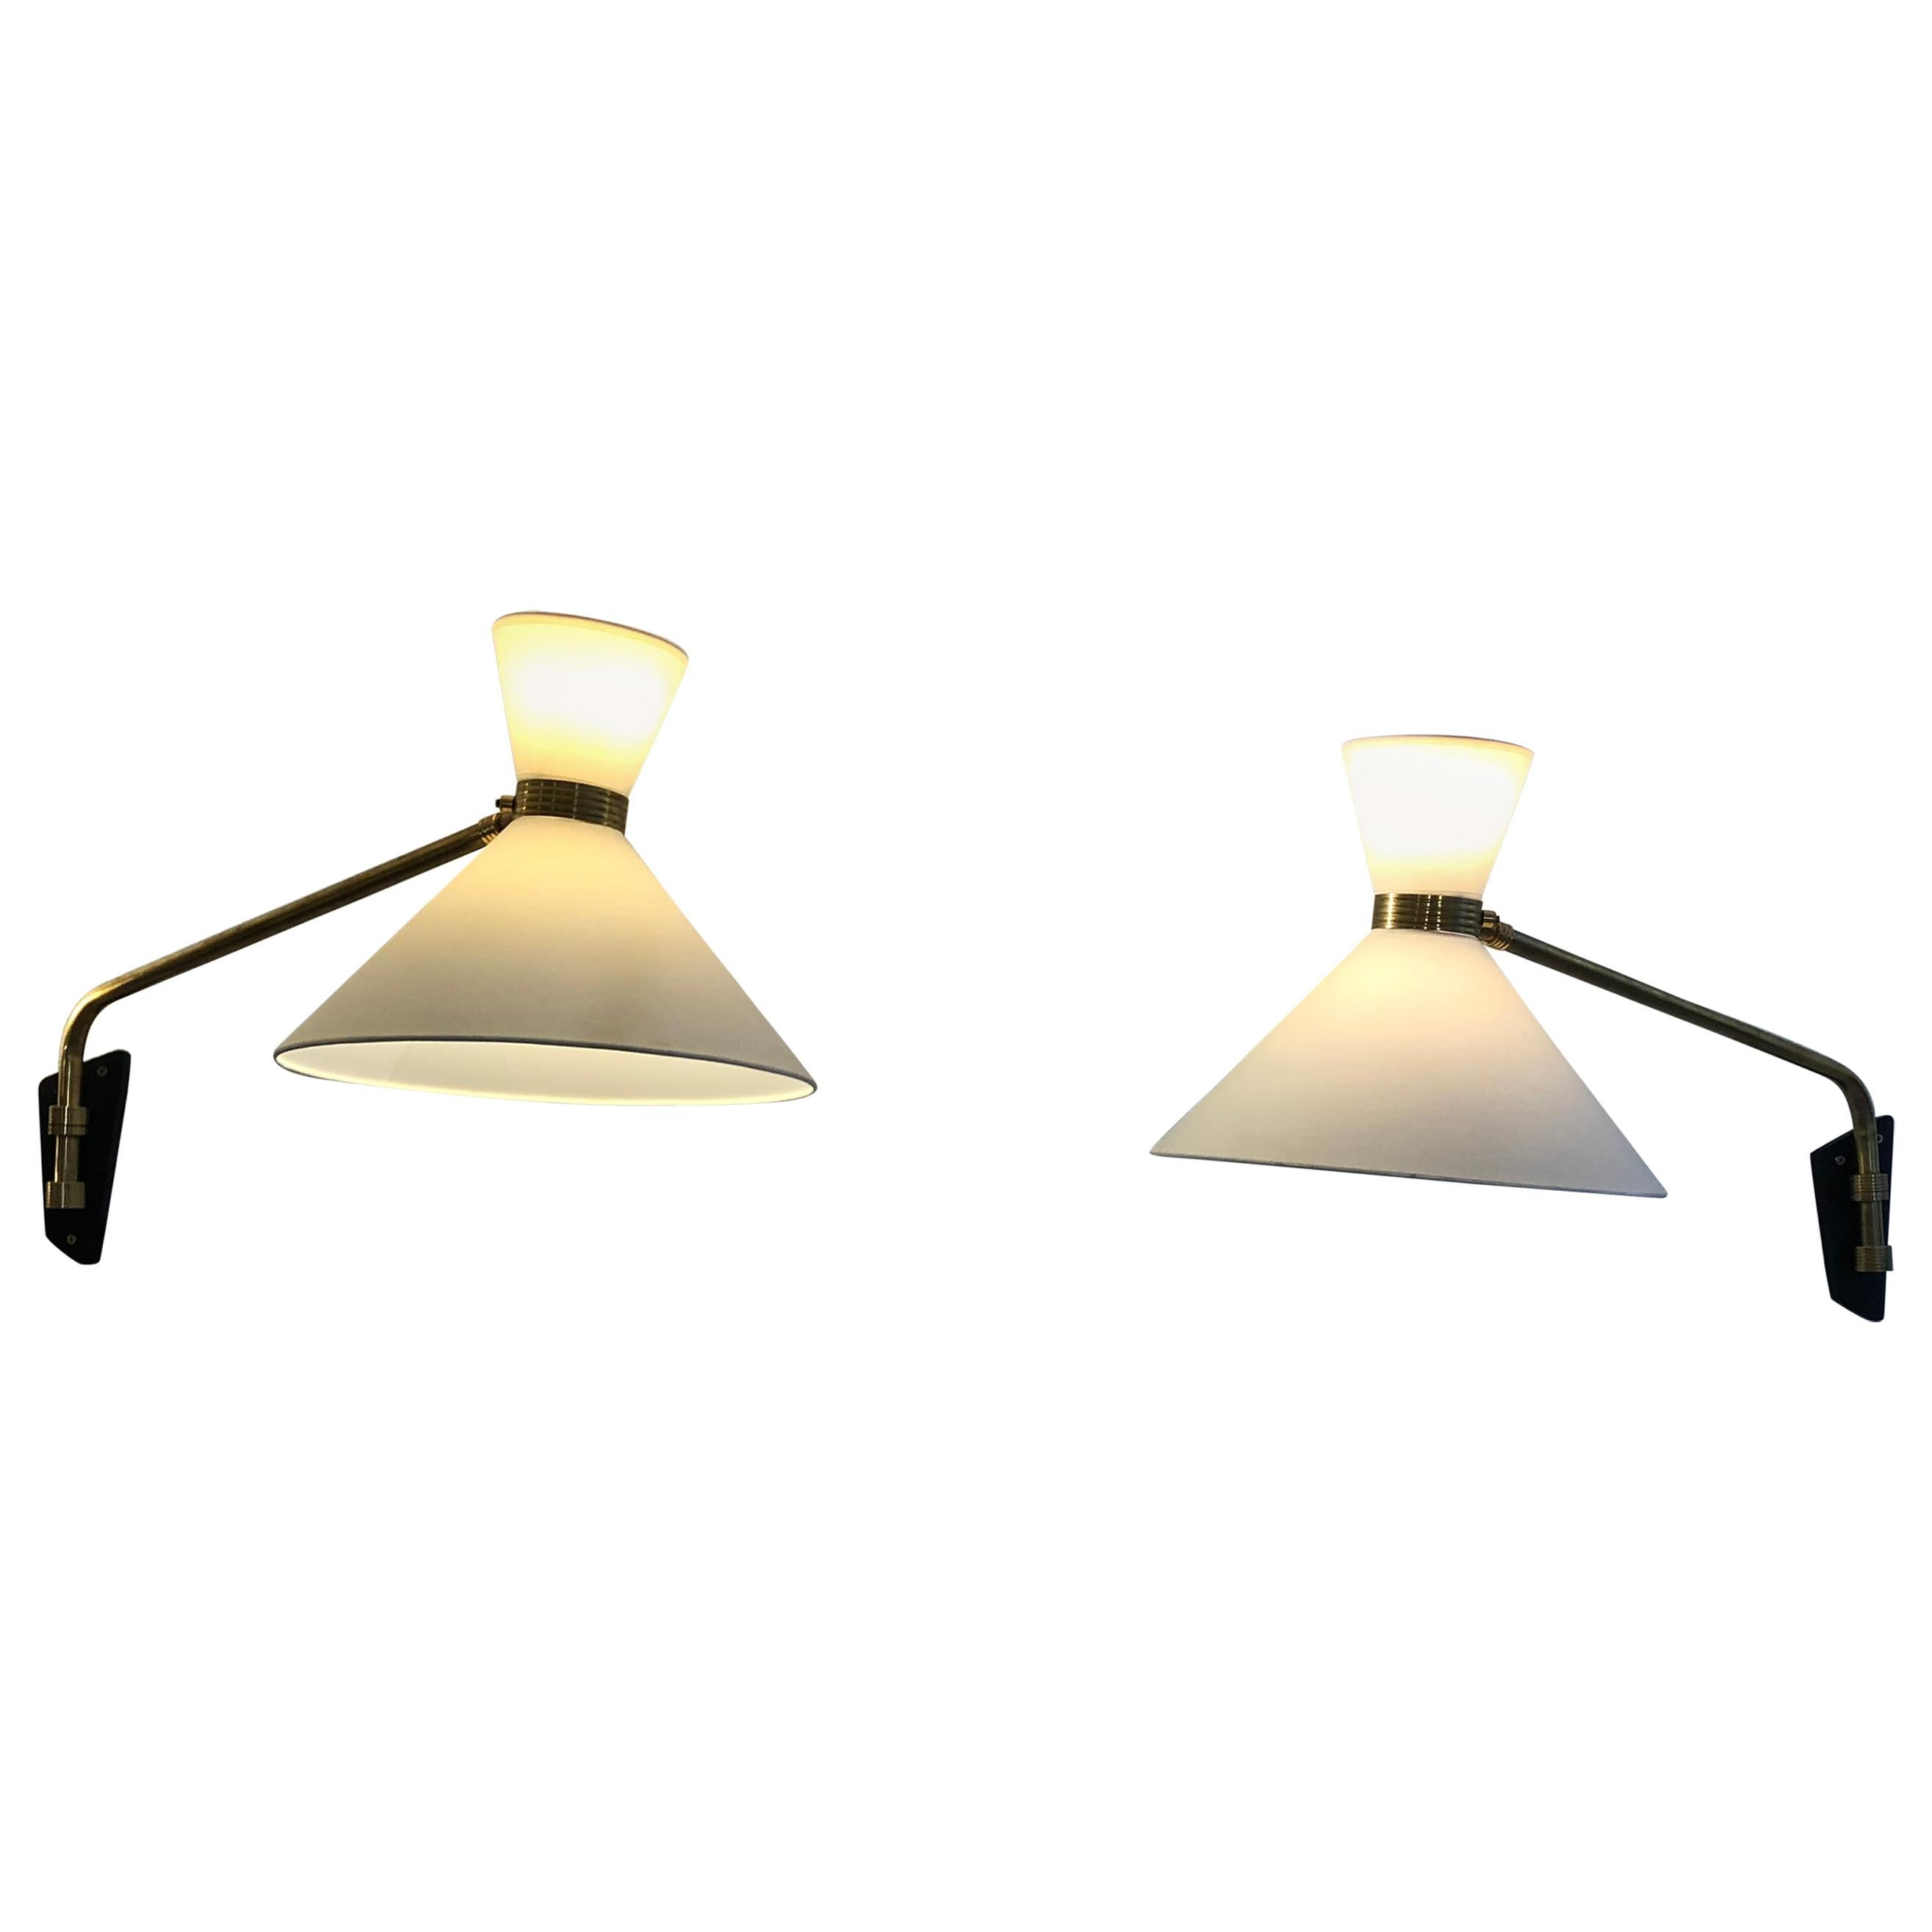 Pair of Wall Lights Adjustable by Arlus, 1950